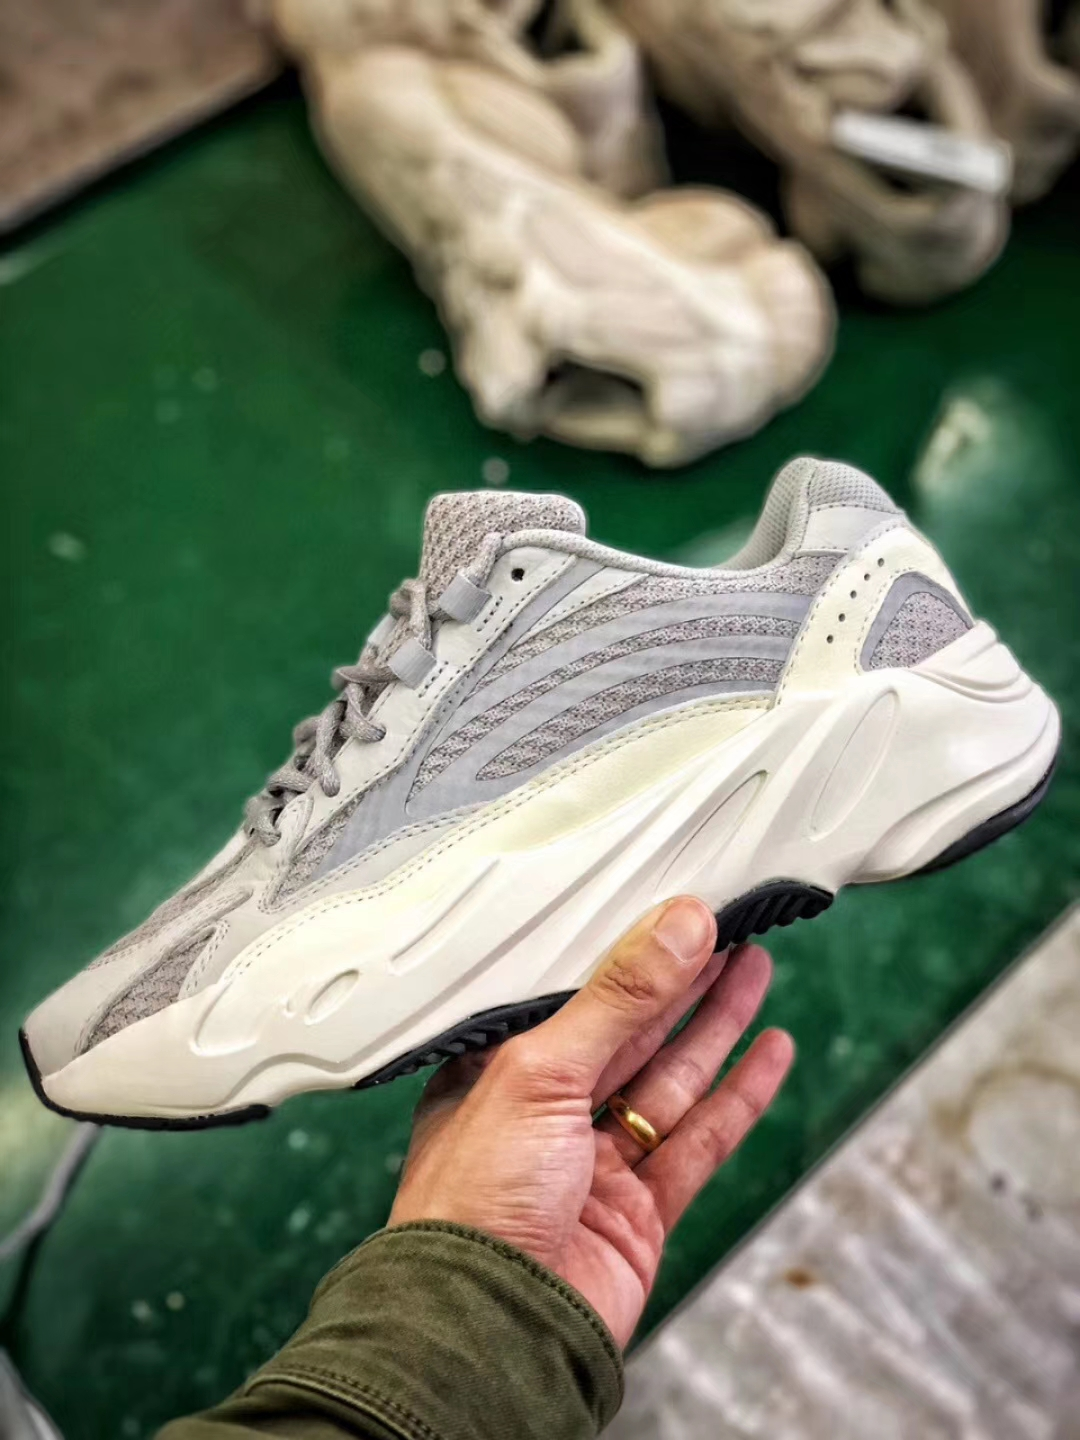 The Adidas Yeezy Boost 700 V2 Static Sneaker Best Quality RepShoes 02